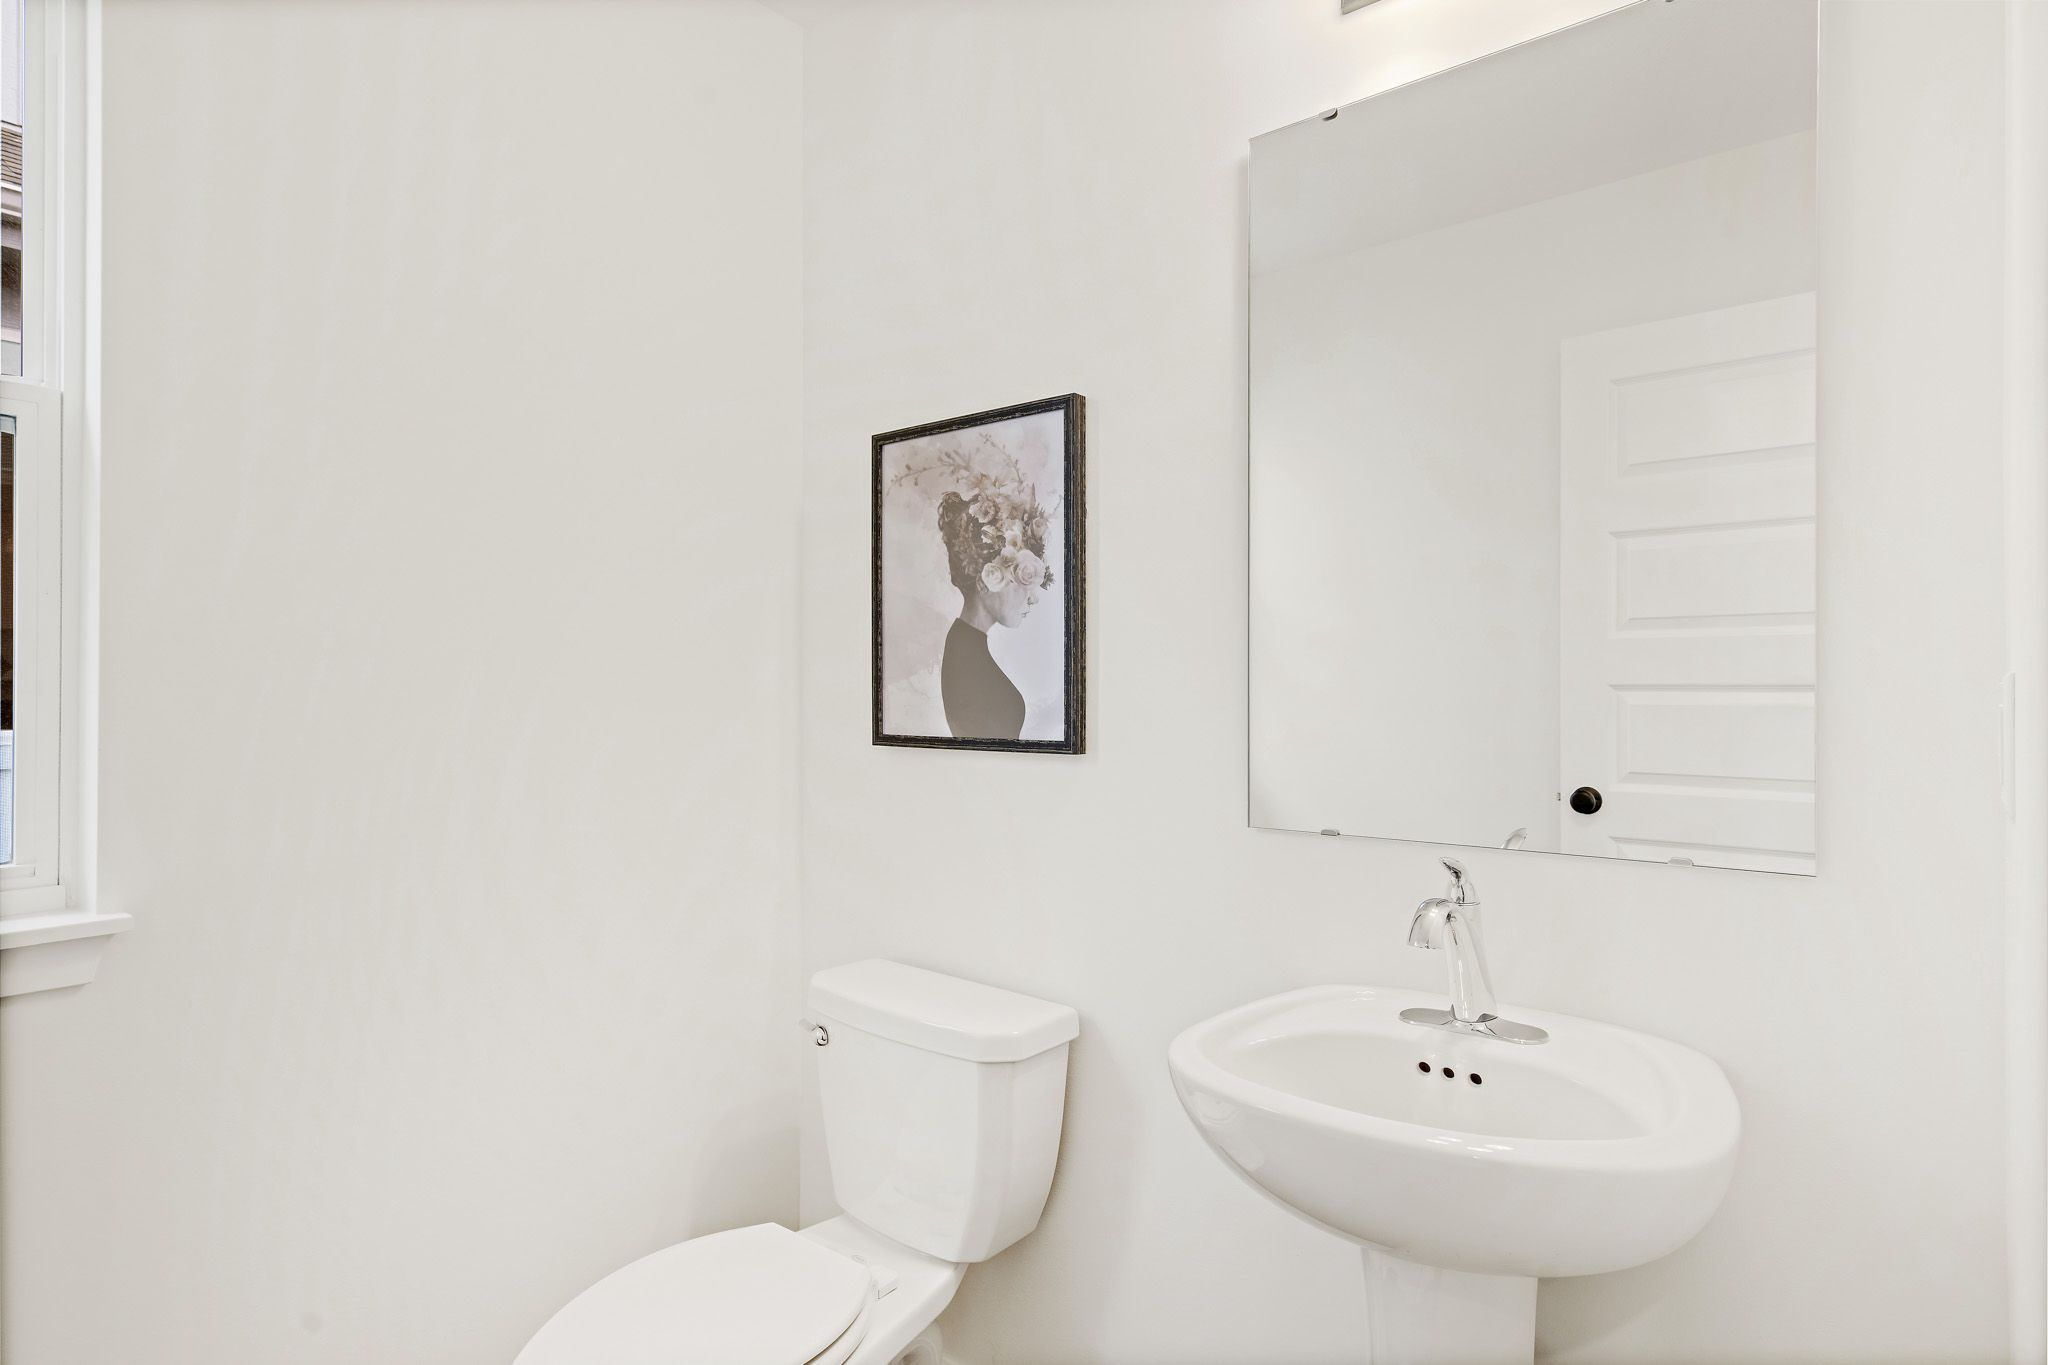 Bathroom featured in the sapphire - contemporary By clover & hive in Kansas City, MO